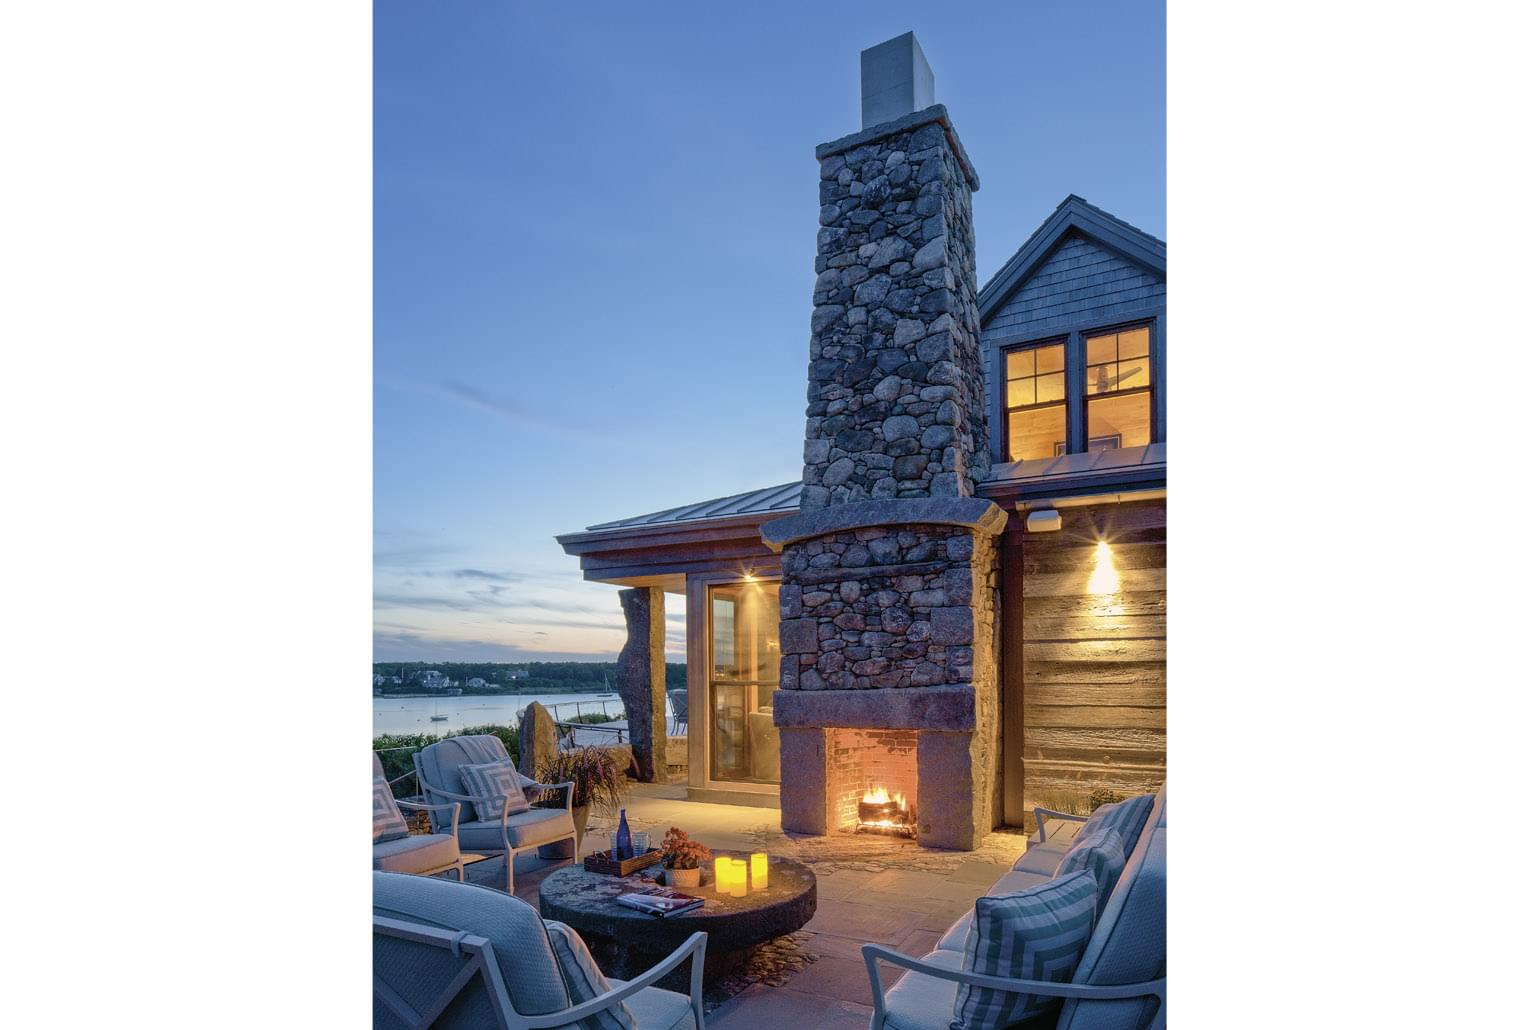 Editor s choice award fine homebuilding s 2014 houses awards for Fine homebuilding